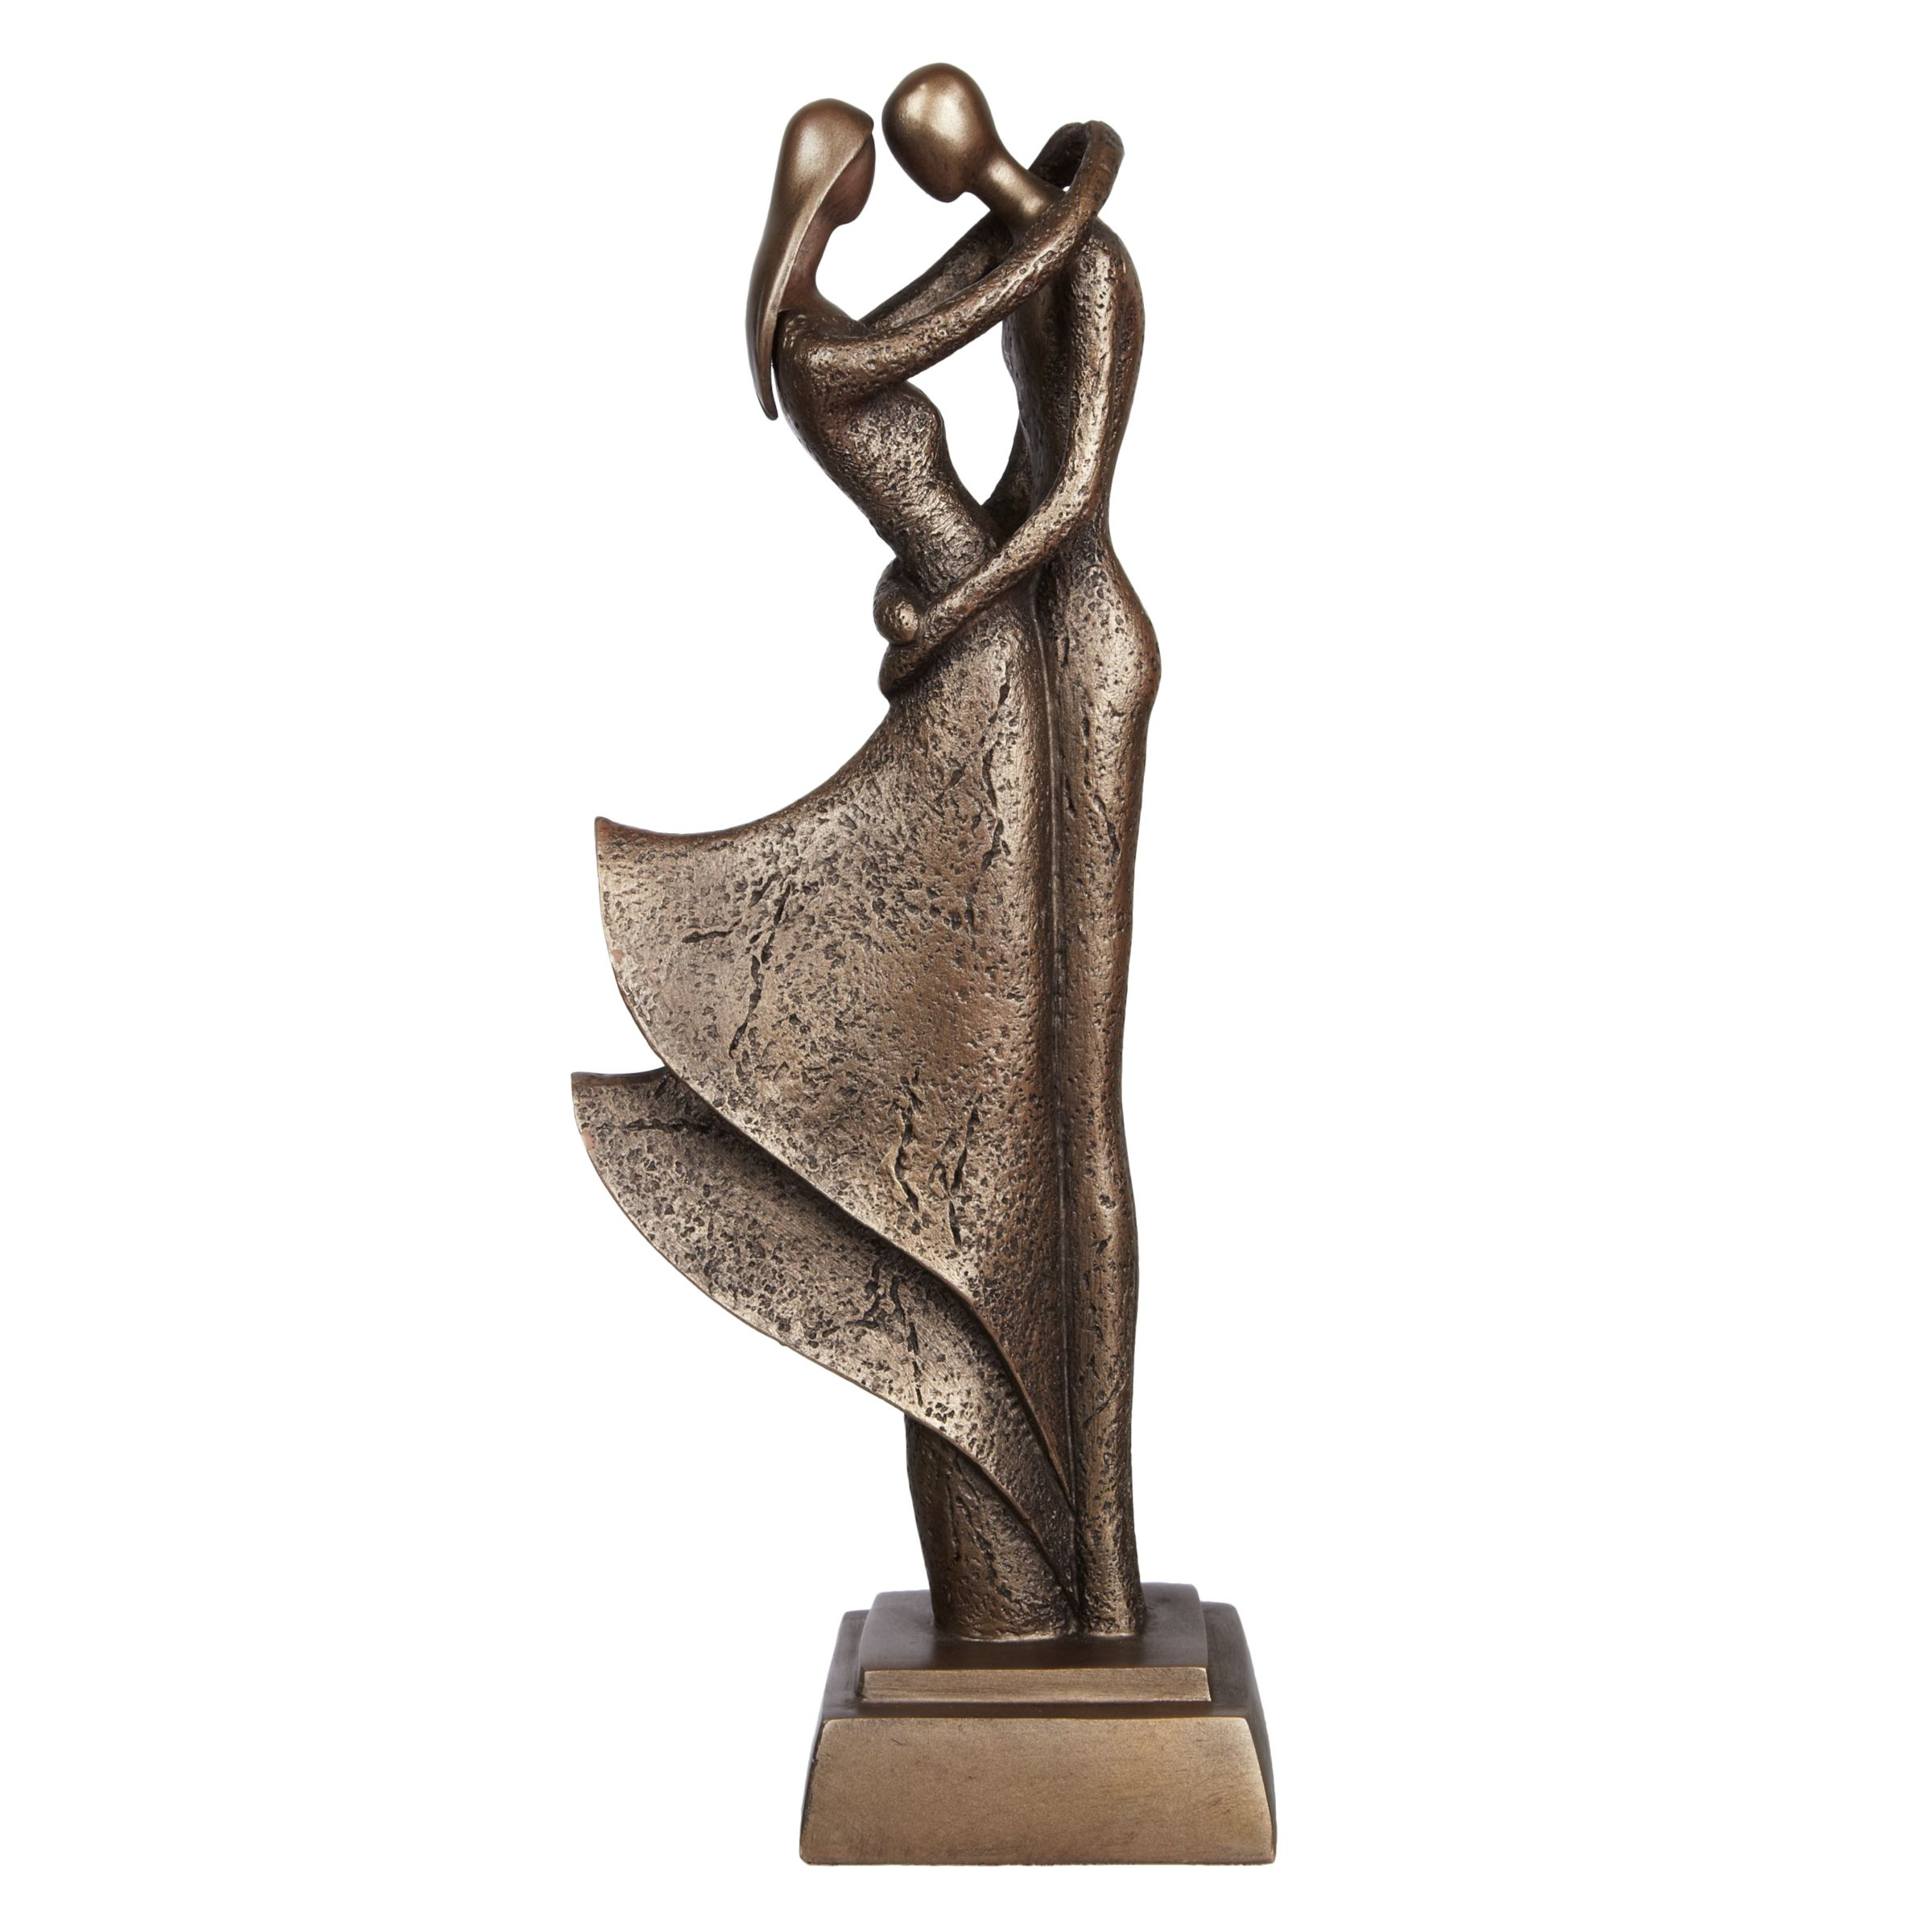 Frith Sculpture Frith Sculpture Strictly Ballroom, by Mitko Kavrikov